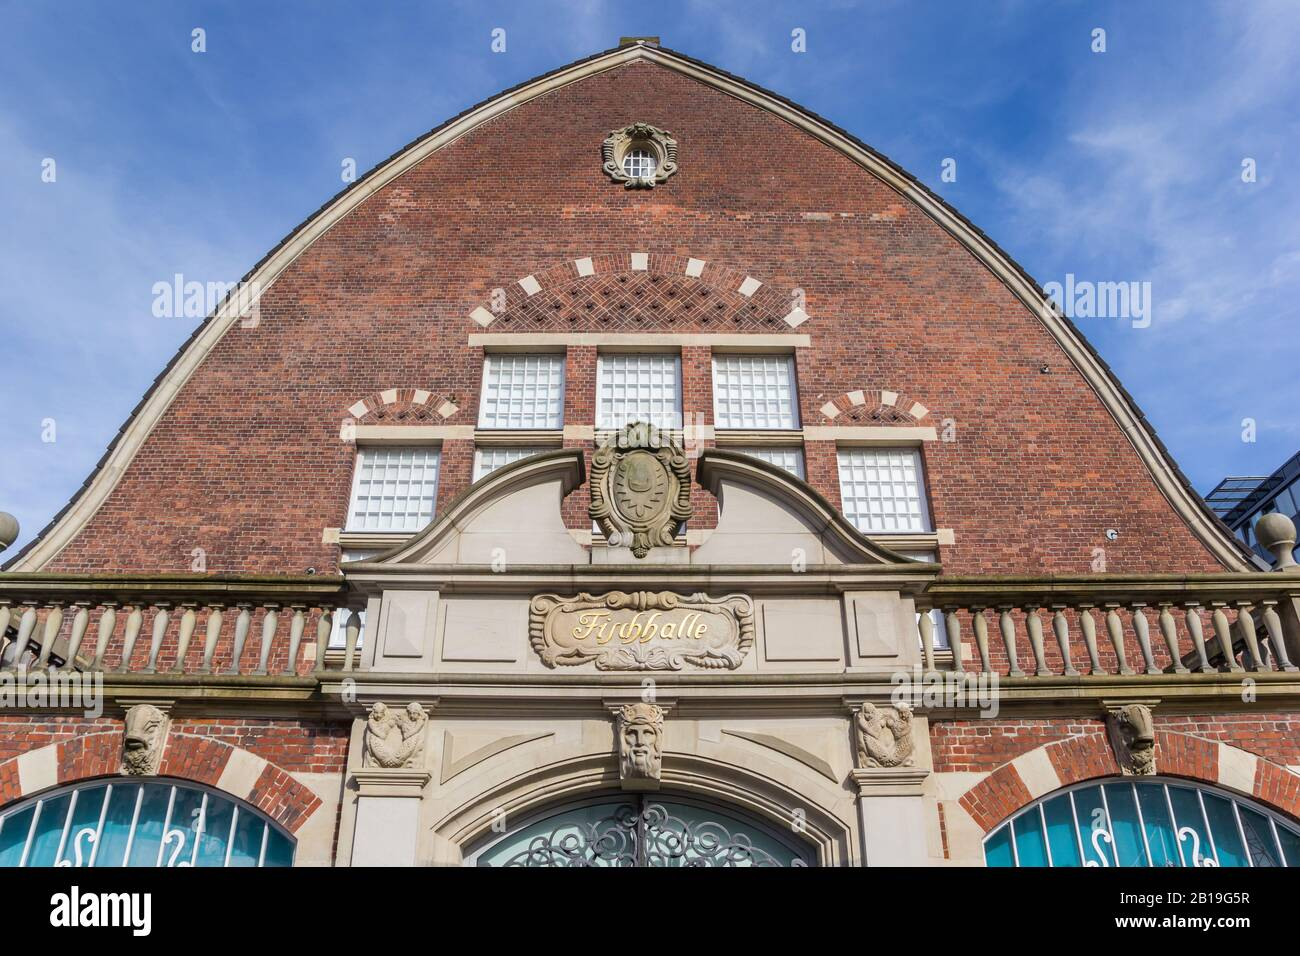 Facade of the maritime museum in Kiel, Germany Stock Photo